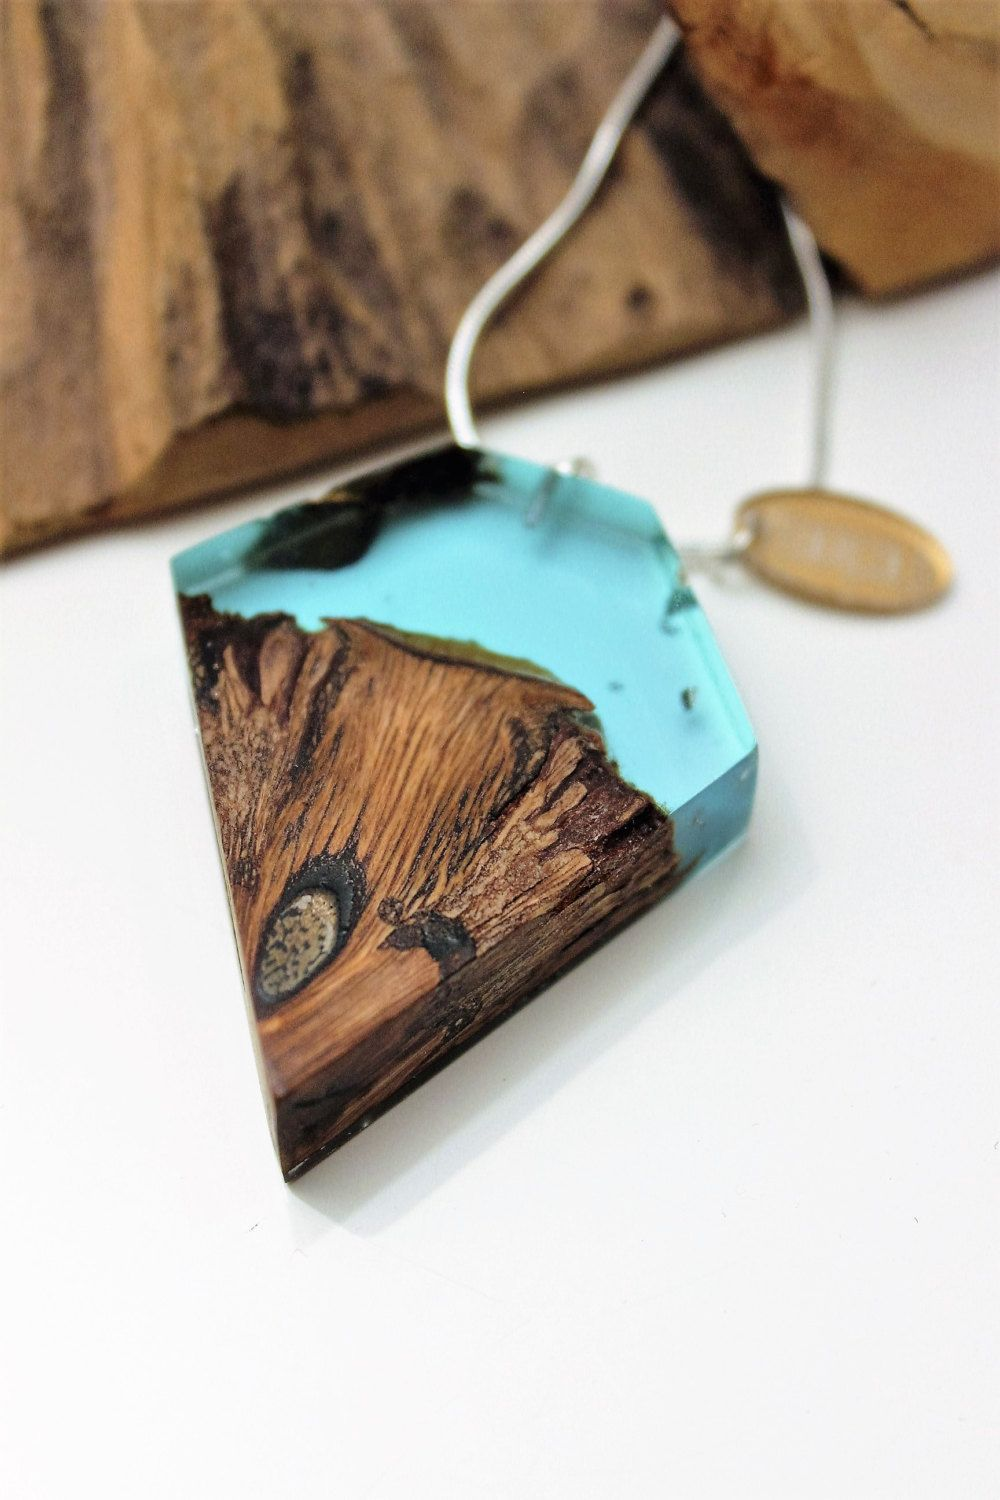 Holz Epoxidharzbeschichtung Silver Necklace With Wood Resin Pendant Handmade Pendant Made Of